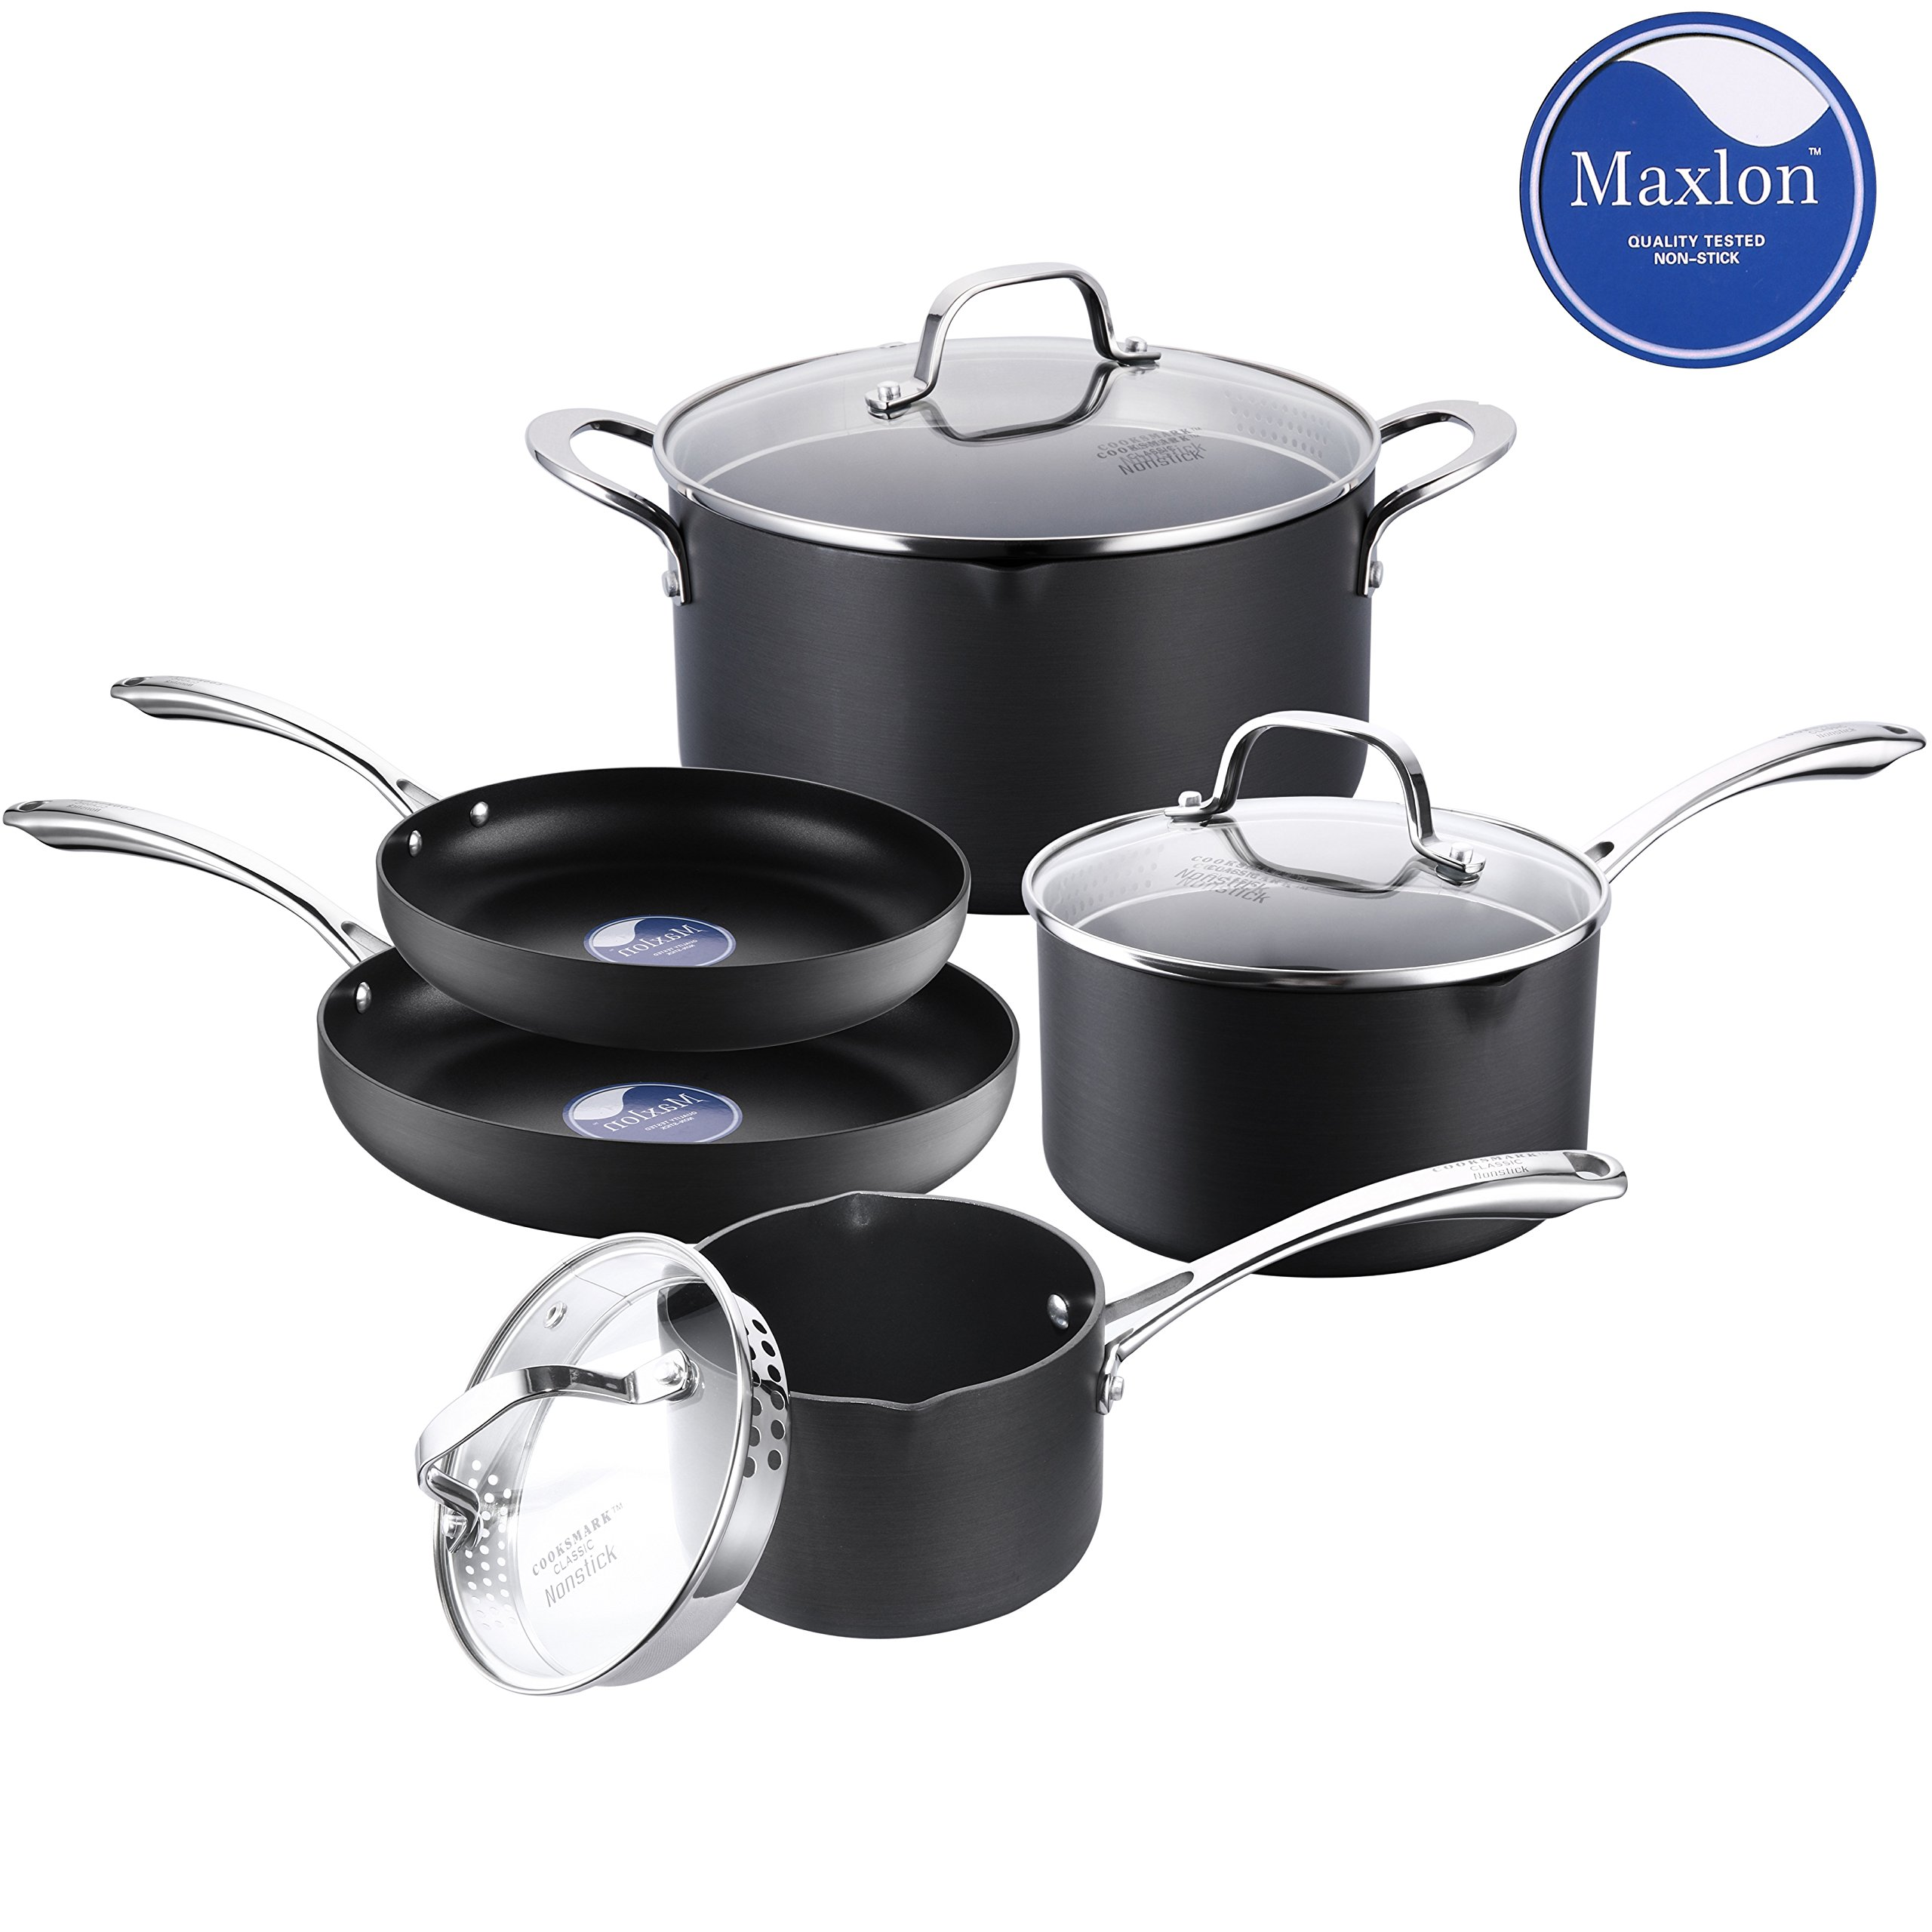 Classic Nonstick Pots and Pans Set, Cooksmark Hard-Anodized Aluminum Scratch Resistant Dishwasher Safe Oven Safe PFOA Free Cookware Set With glass lids and straining cover, 5-PCS Black